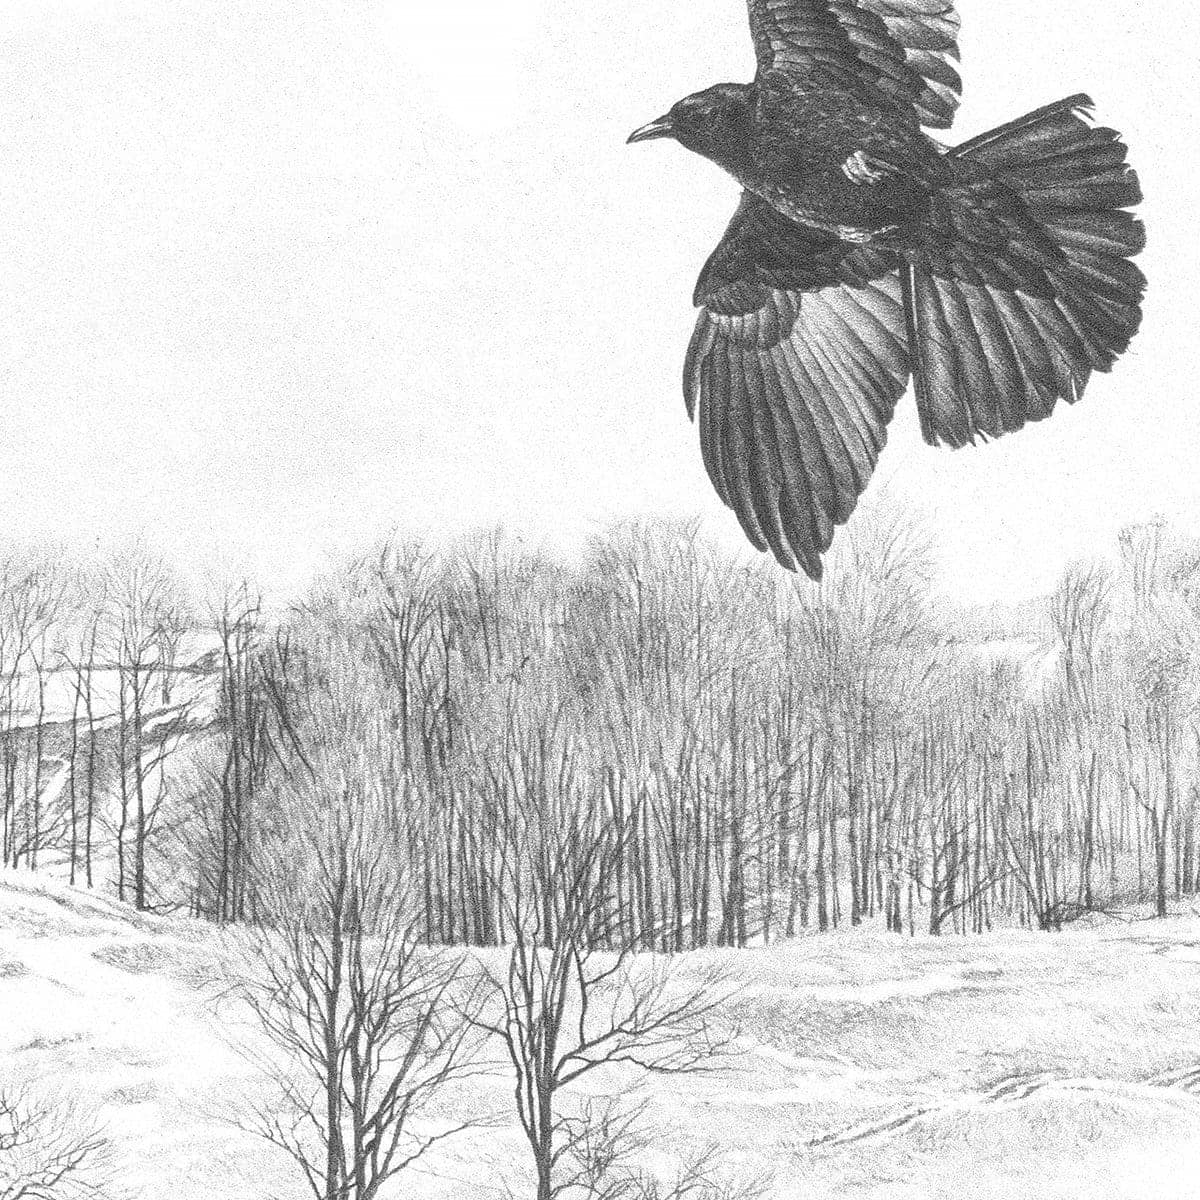 Crow Flying Over Landscape - Art Print by Glen Loates from the Glen Loates Store